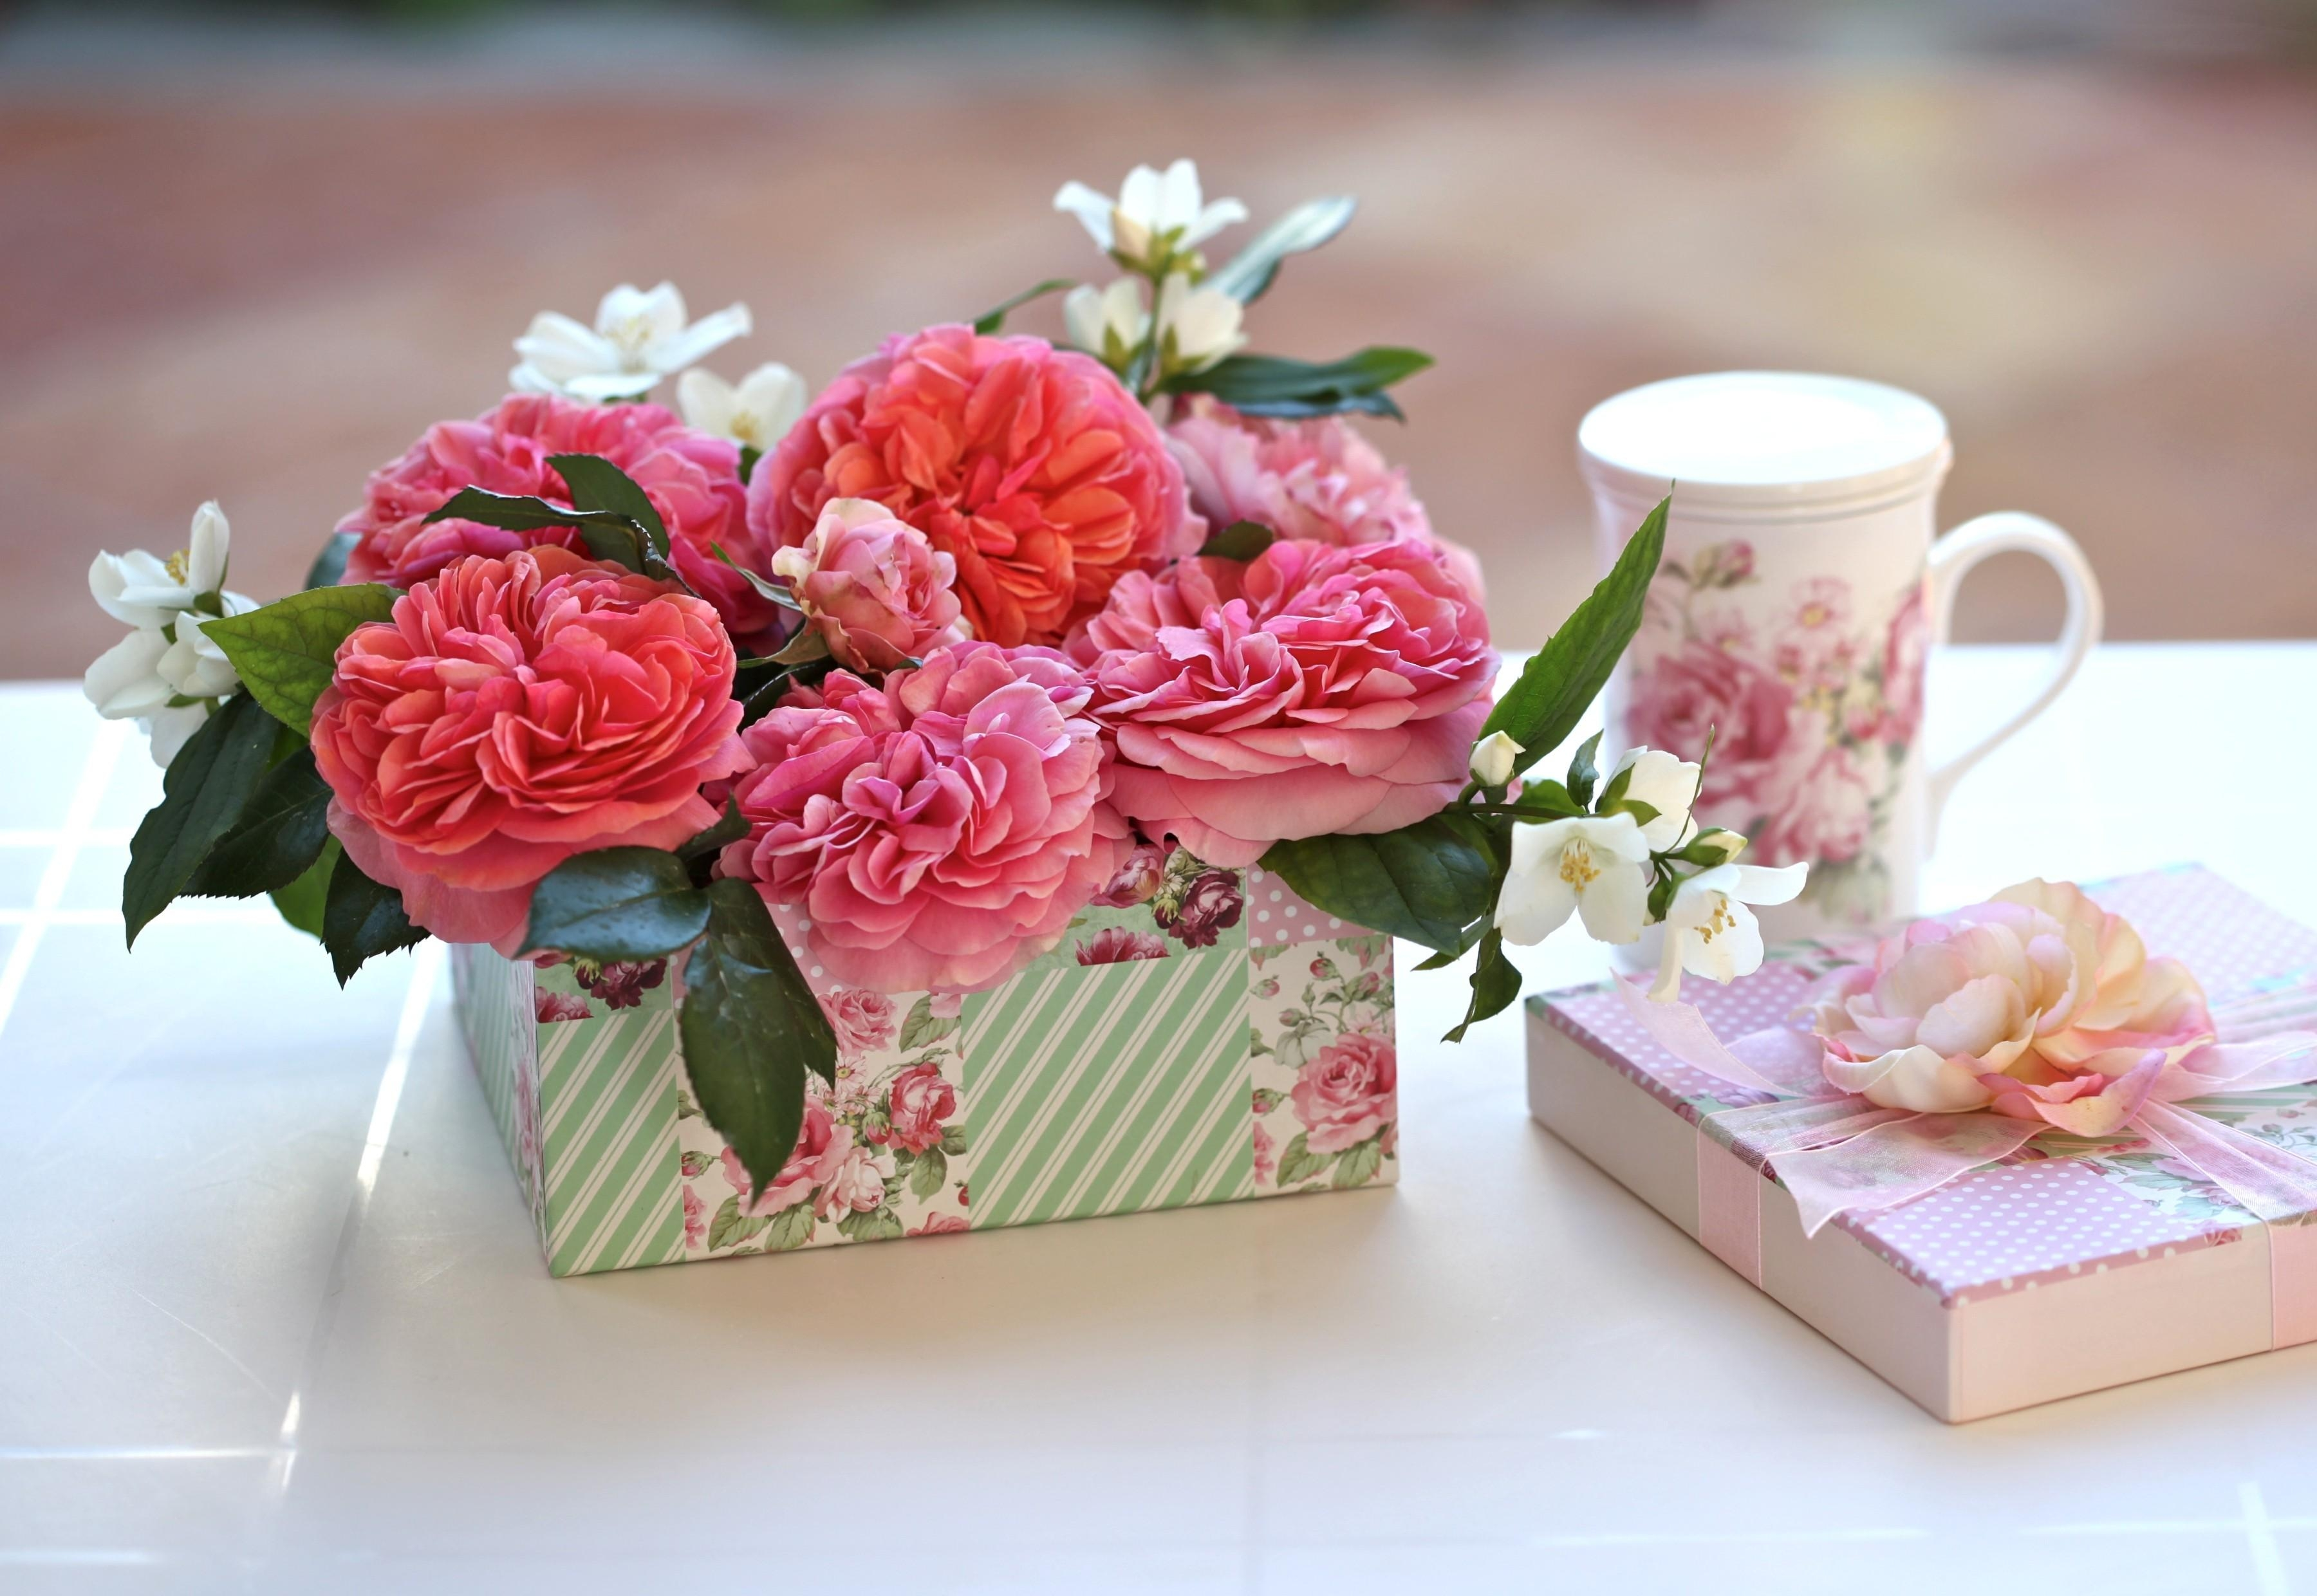 130138 download wallpaper Flowers, Buds, Box, Capsule, Present, Gift, Surprise, Cup, Roses screensavers and pictures for free